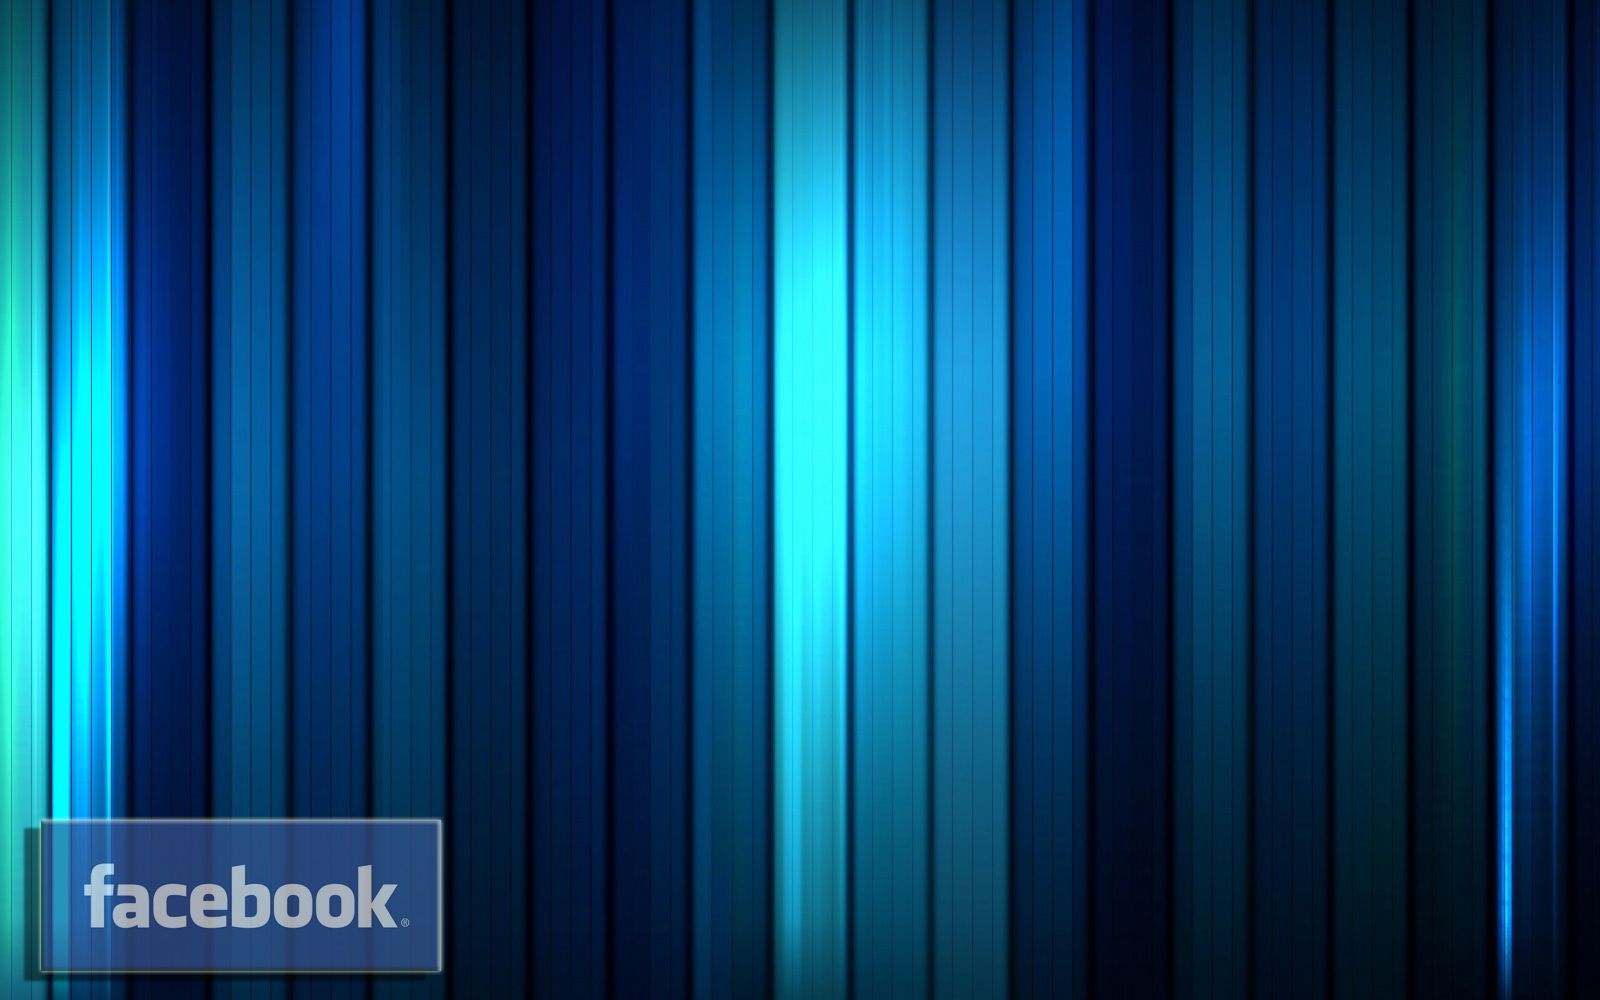 logo facebook wallpaper